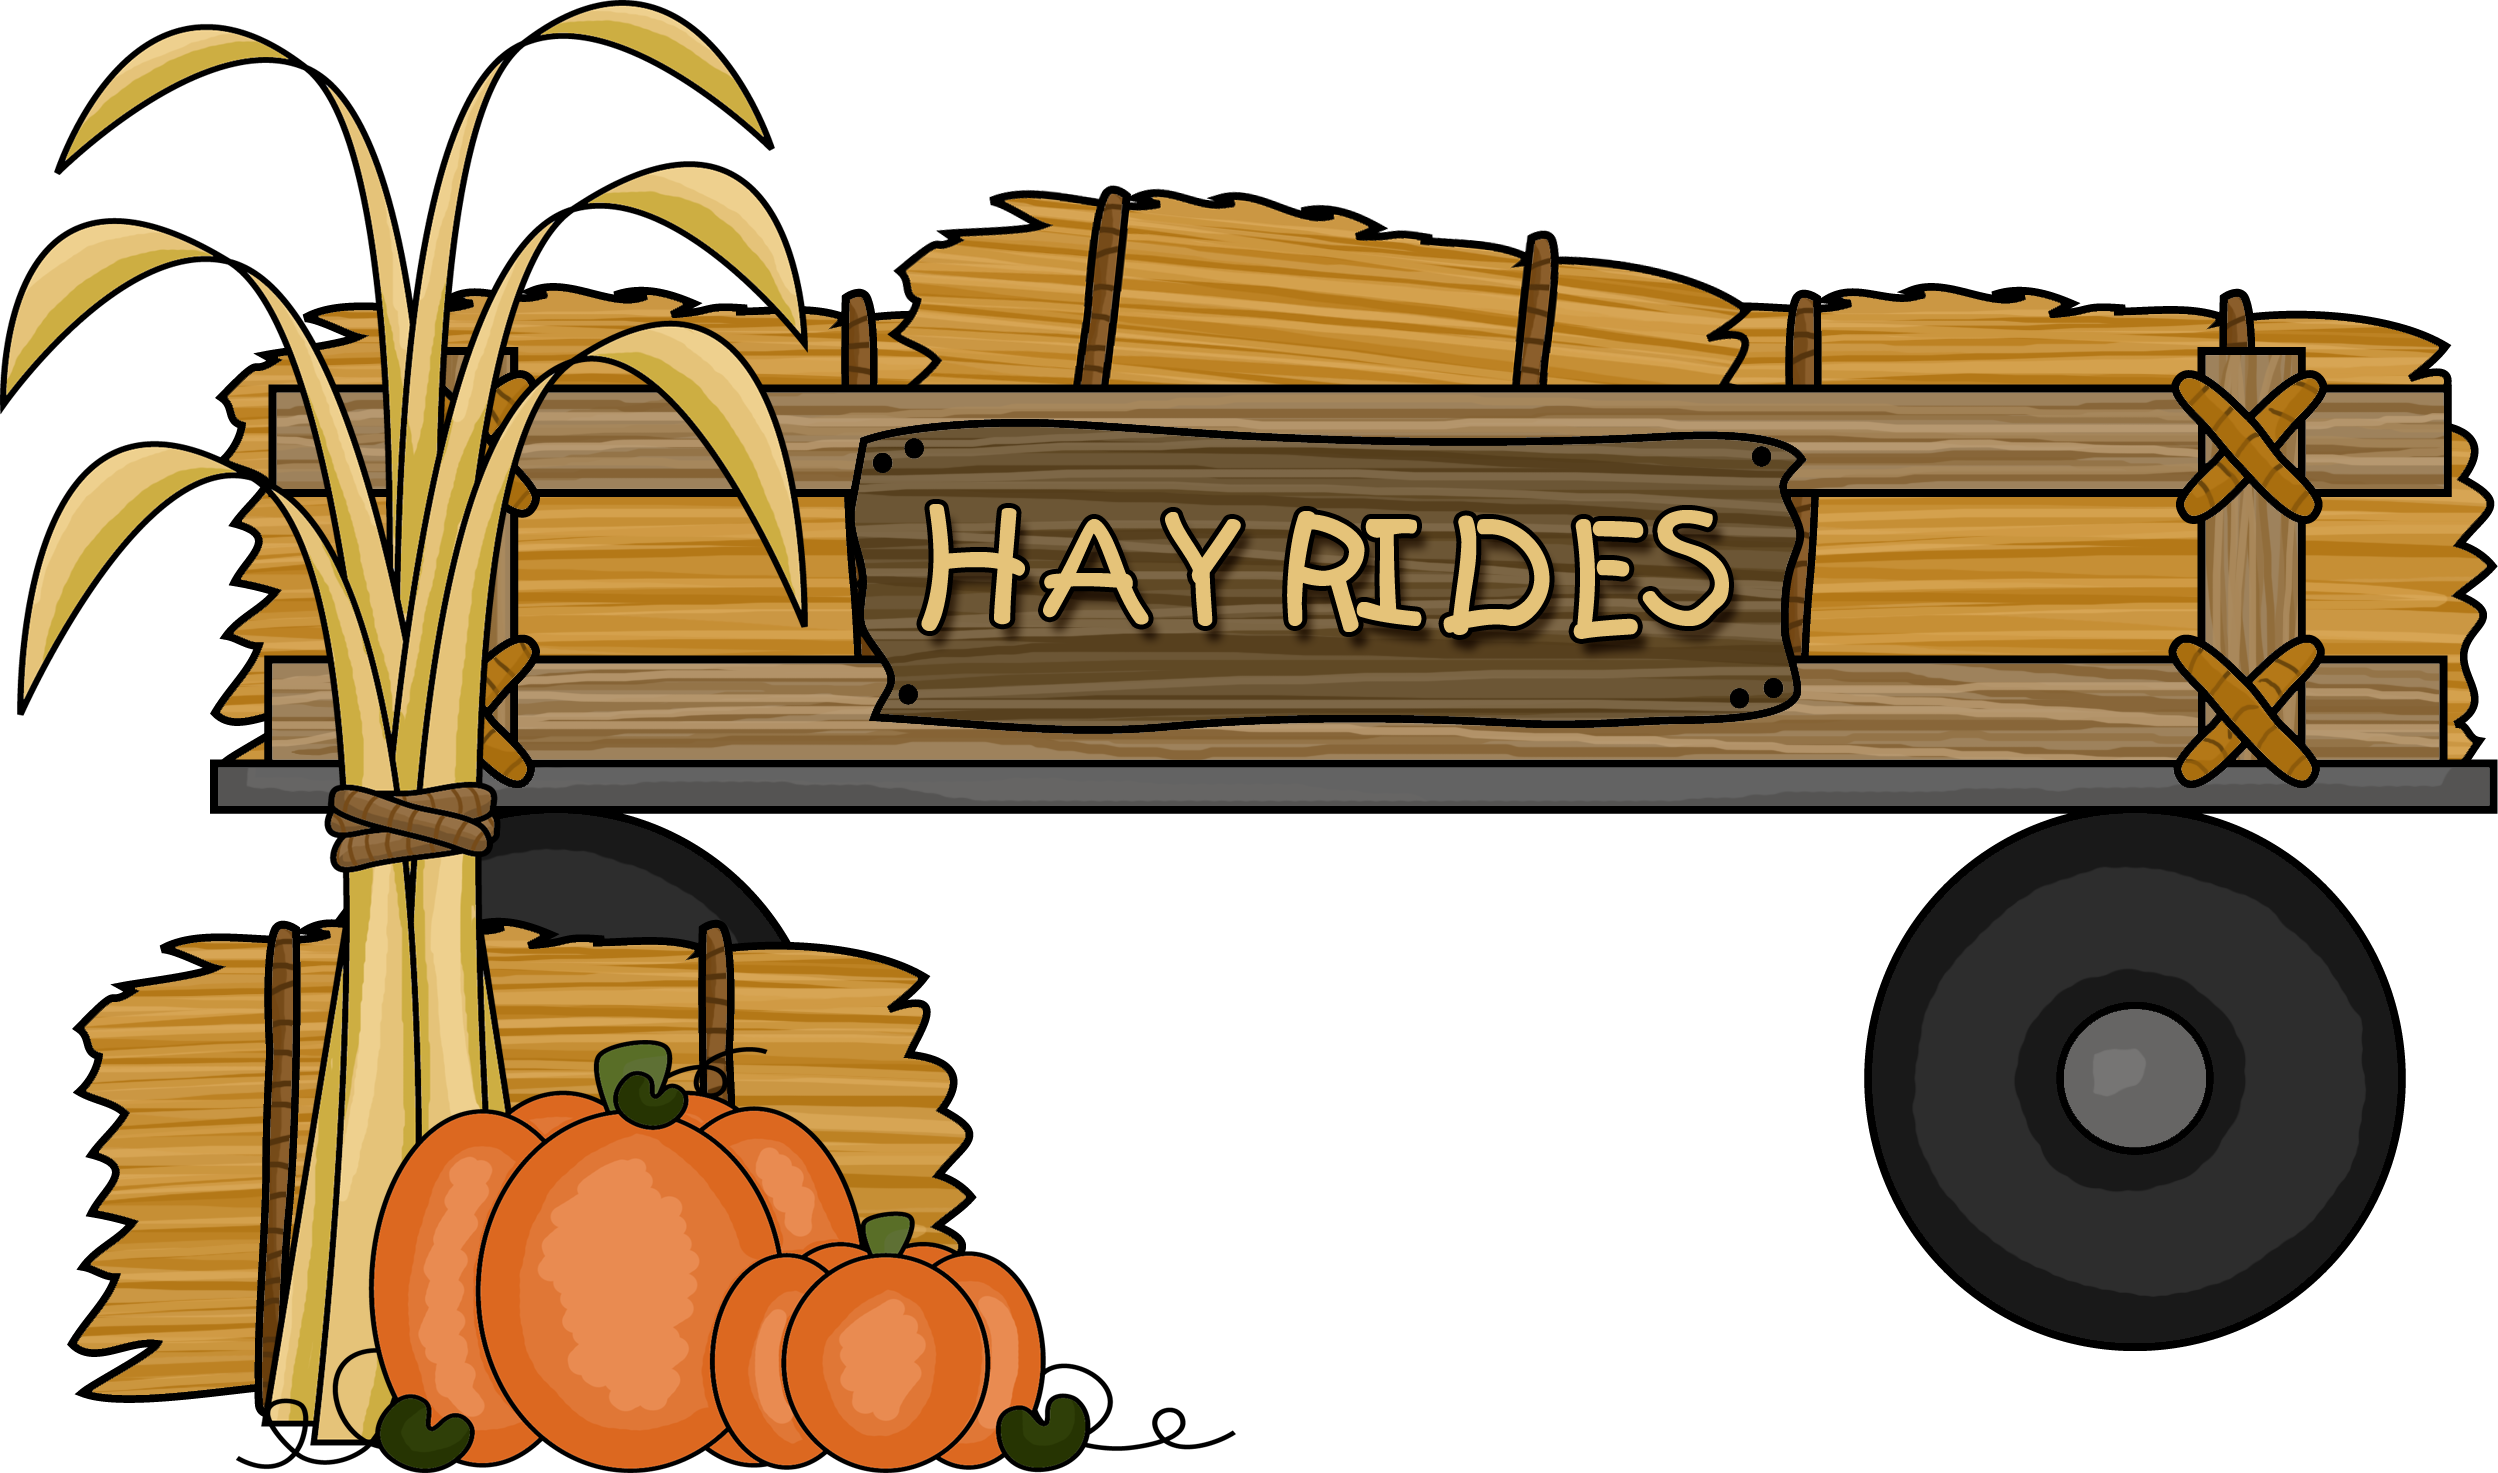 Tractor Hayride Clipart Index of /storage/media/2664/private